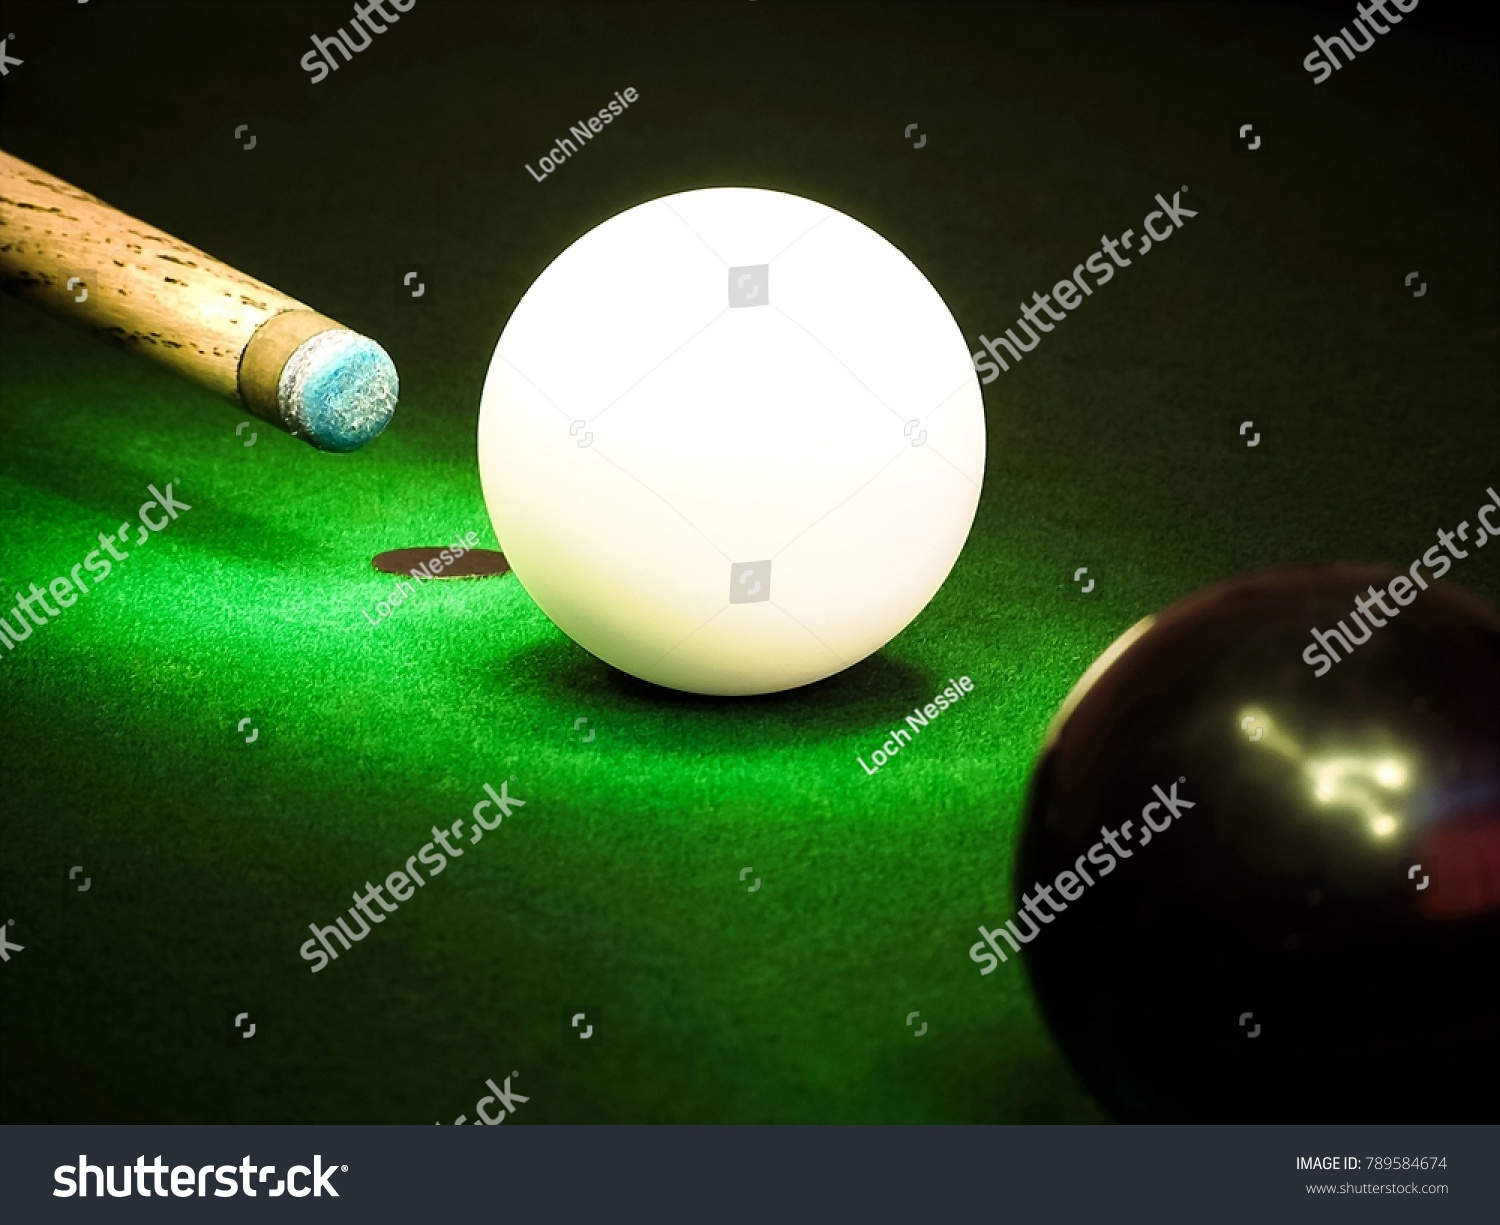 stock-photo-cue-aiming-at-the-black-ball